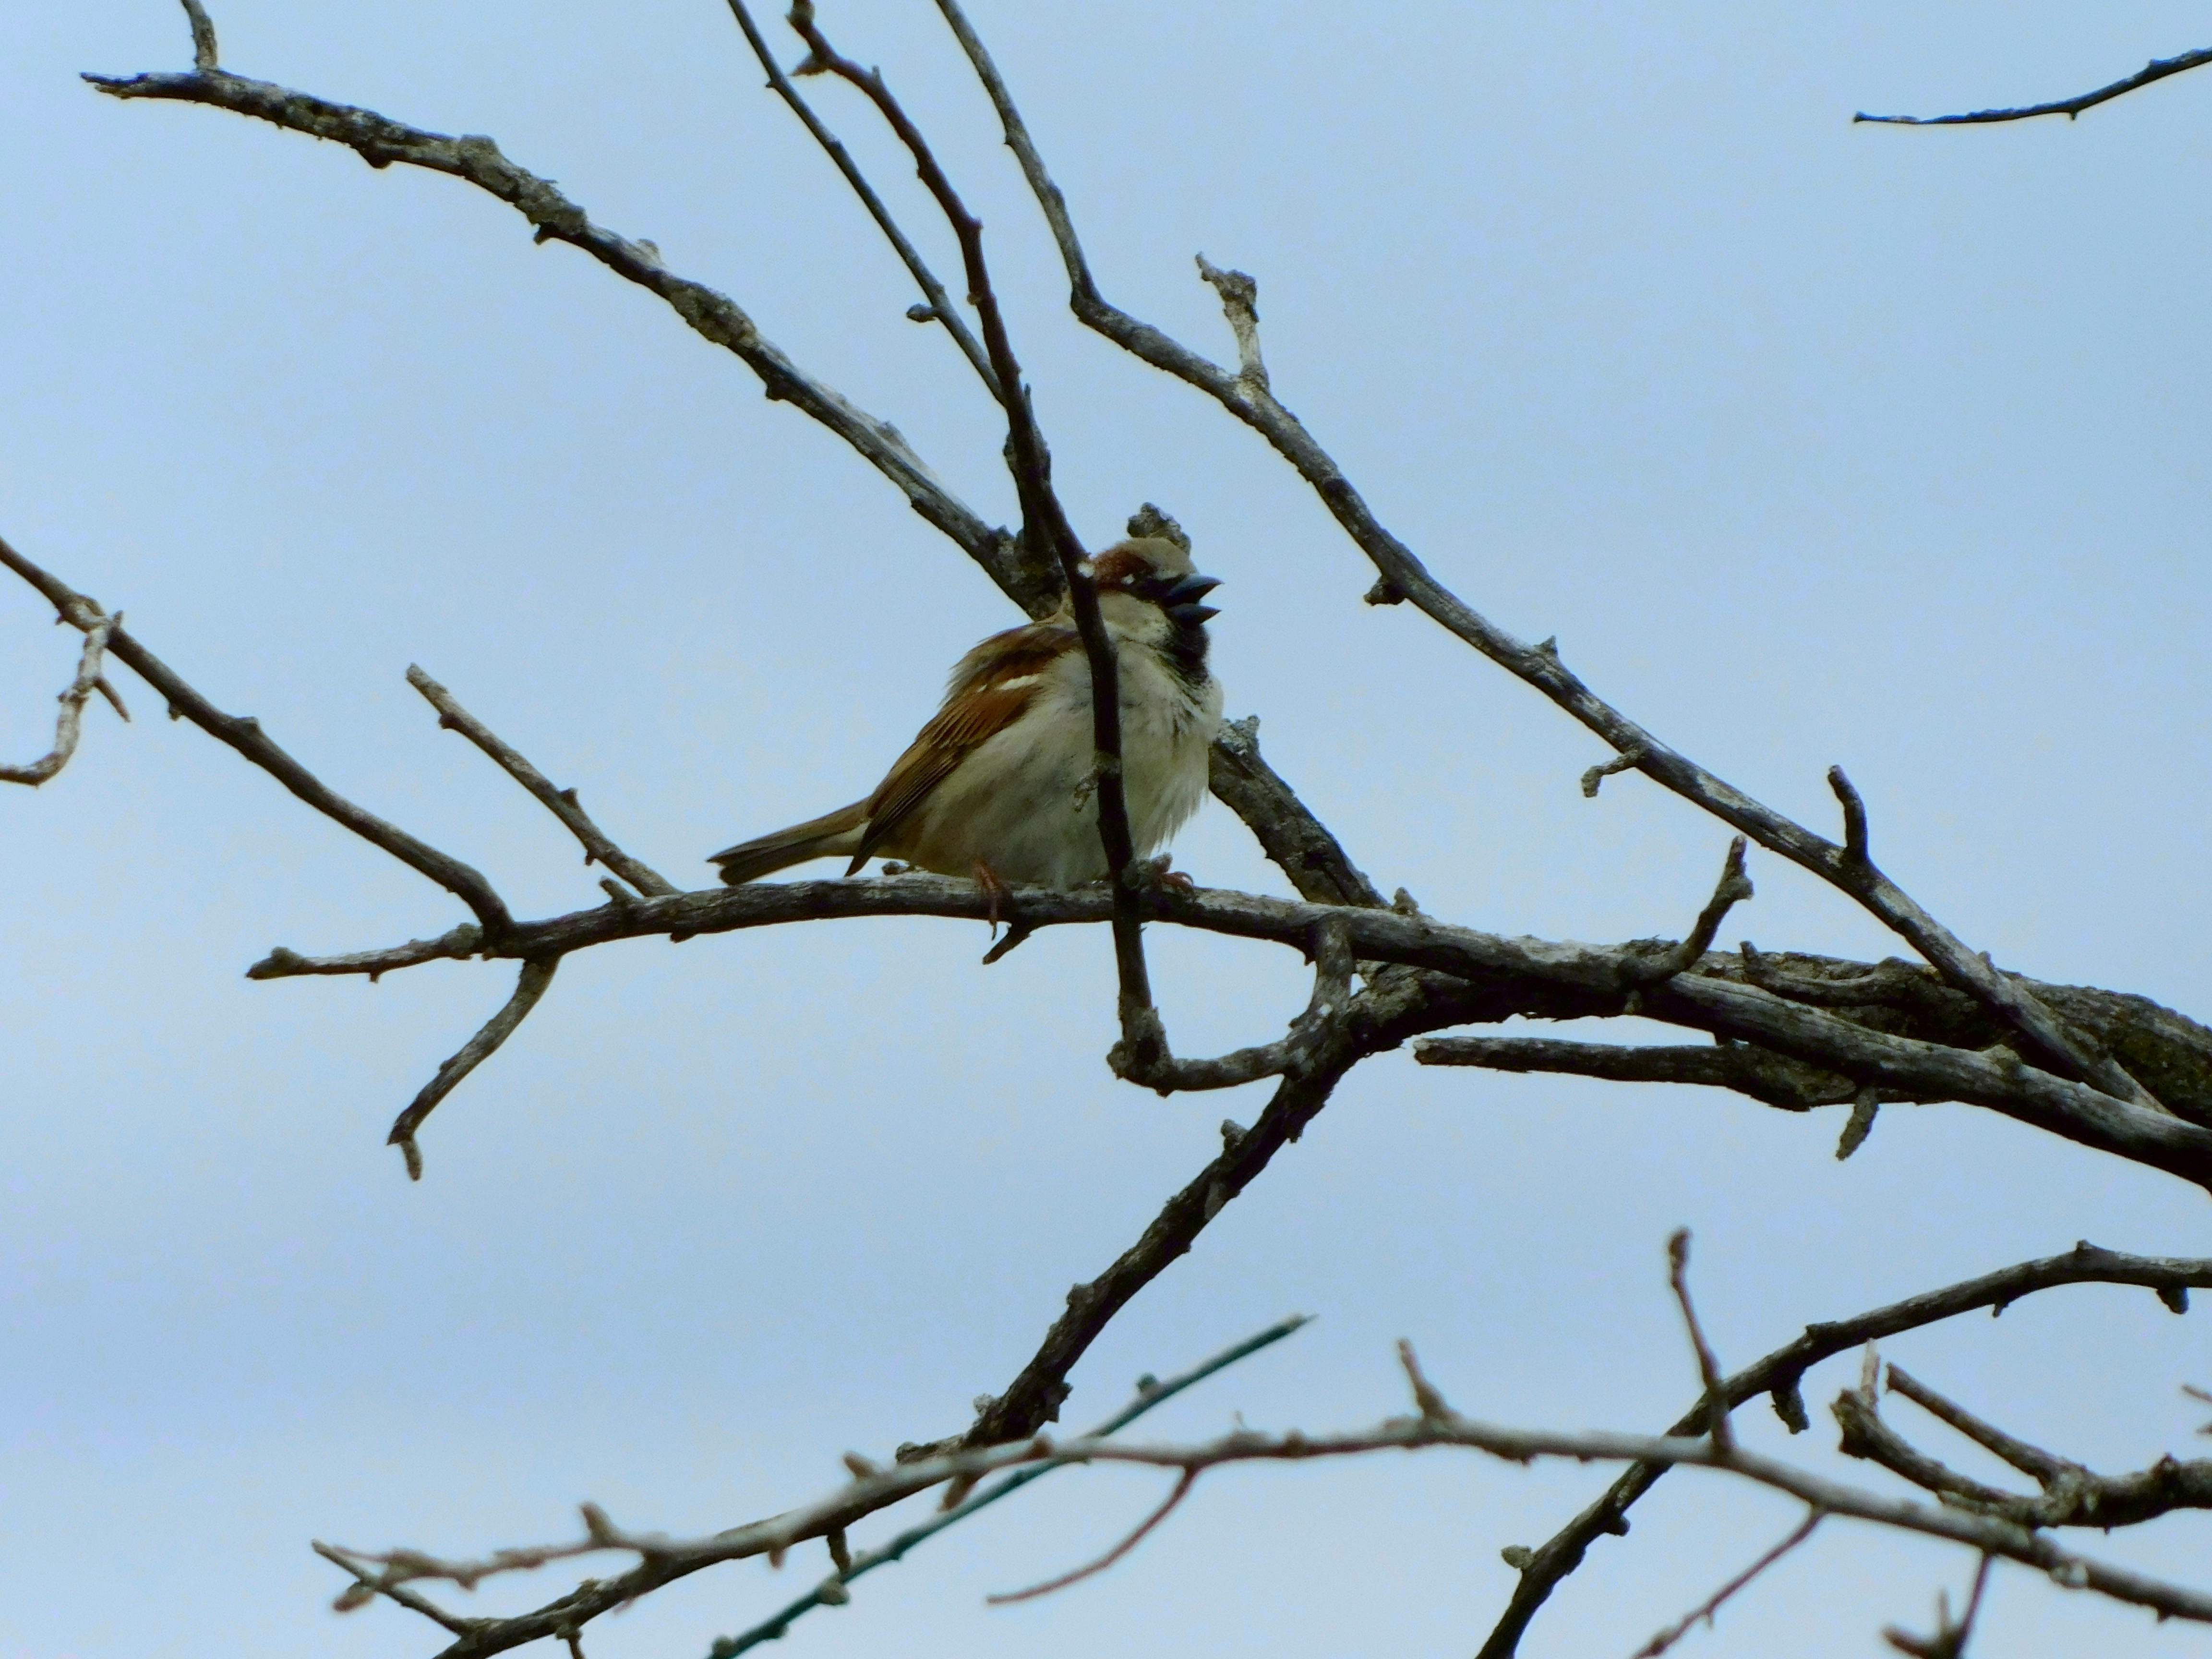 House sparrow in tree singing song